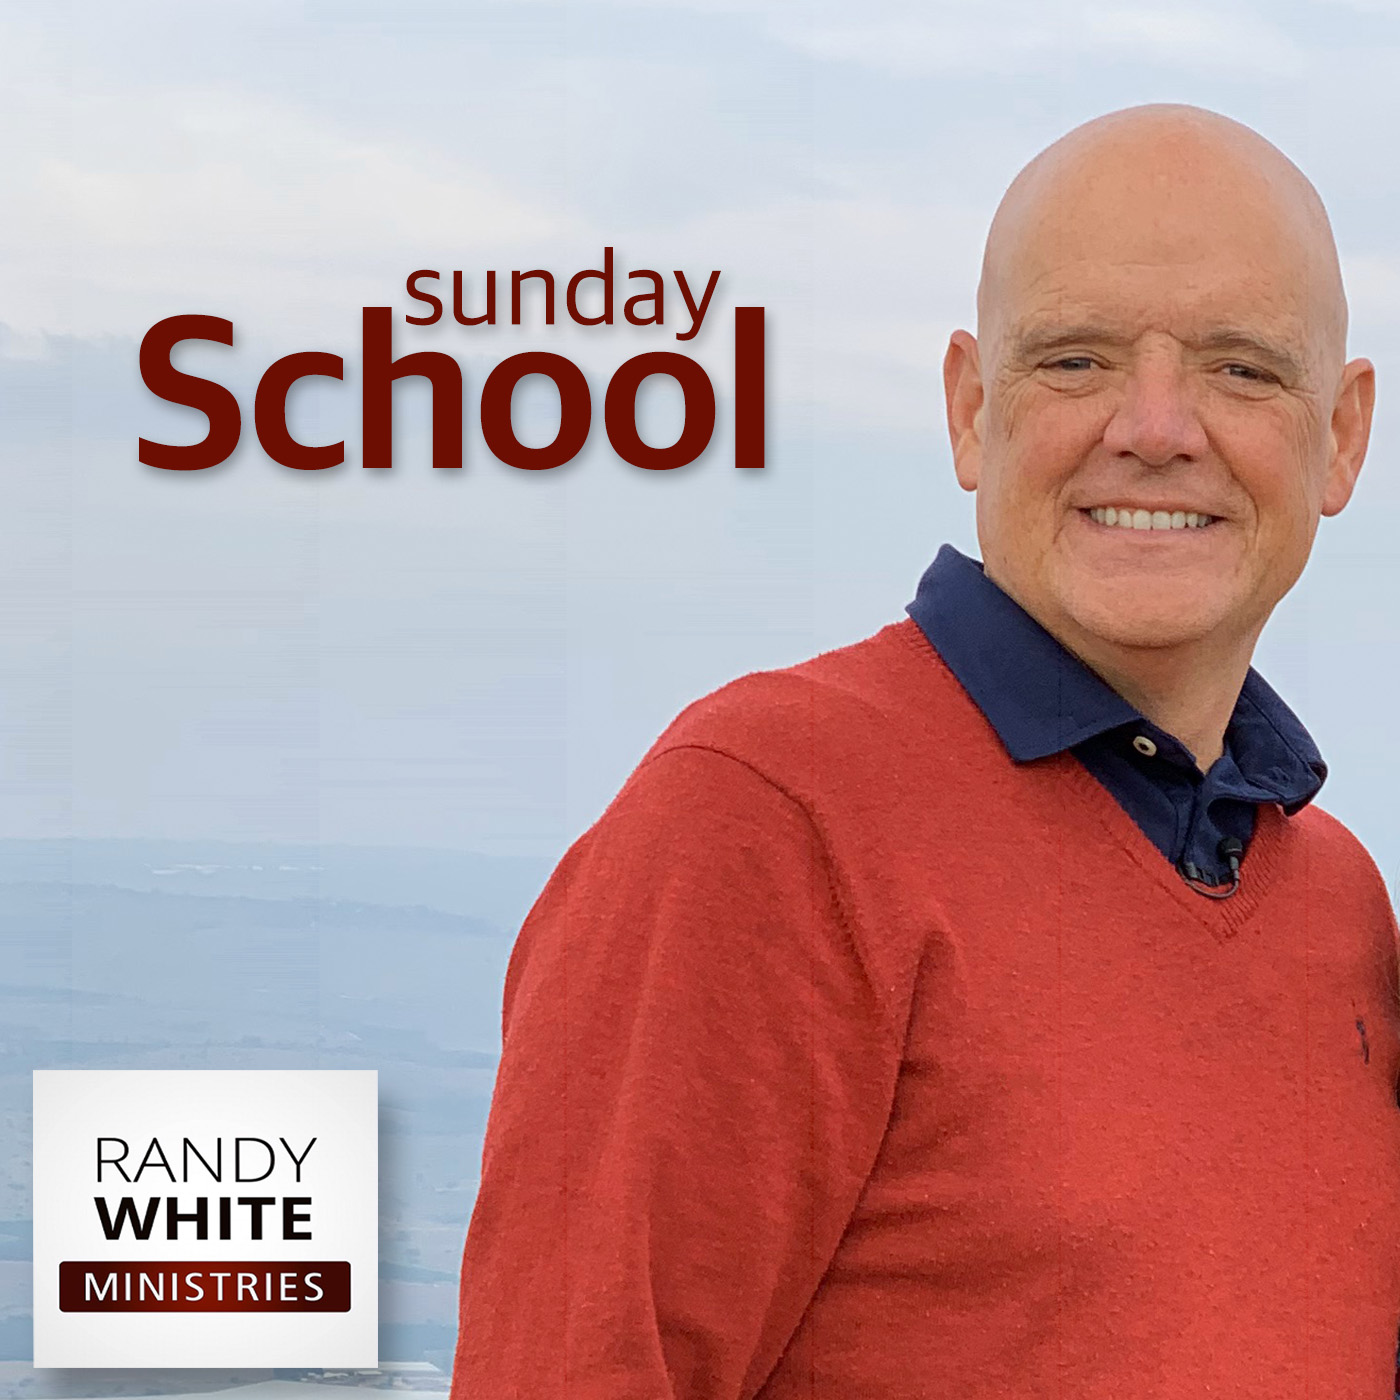 RWM: Sunday School